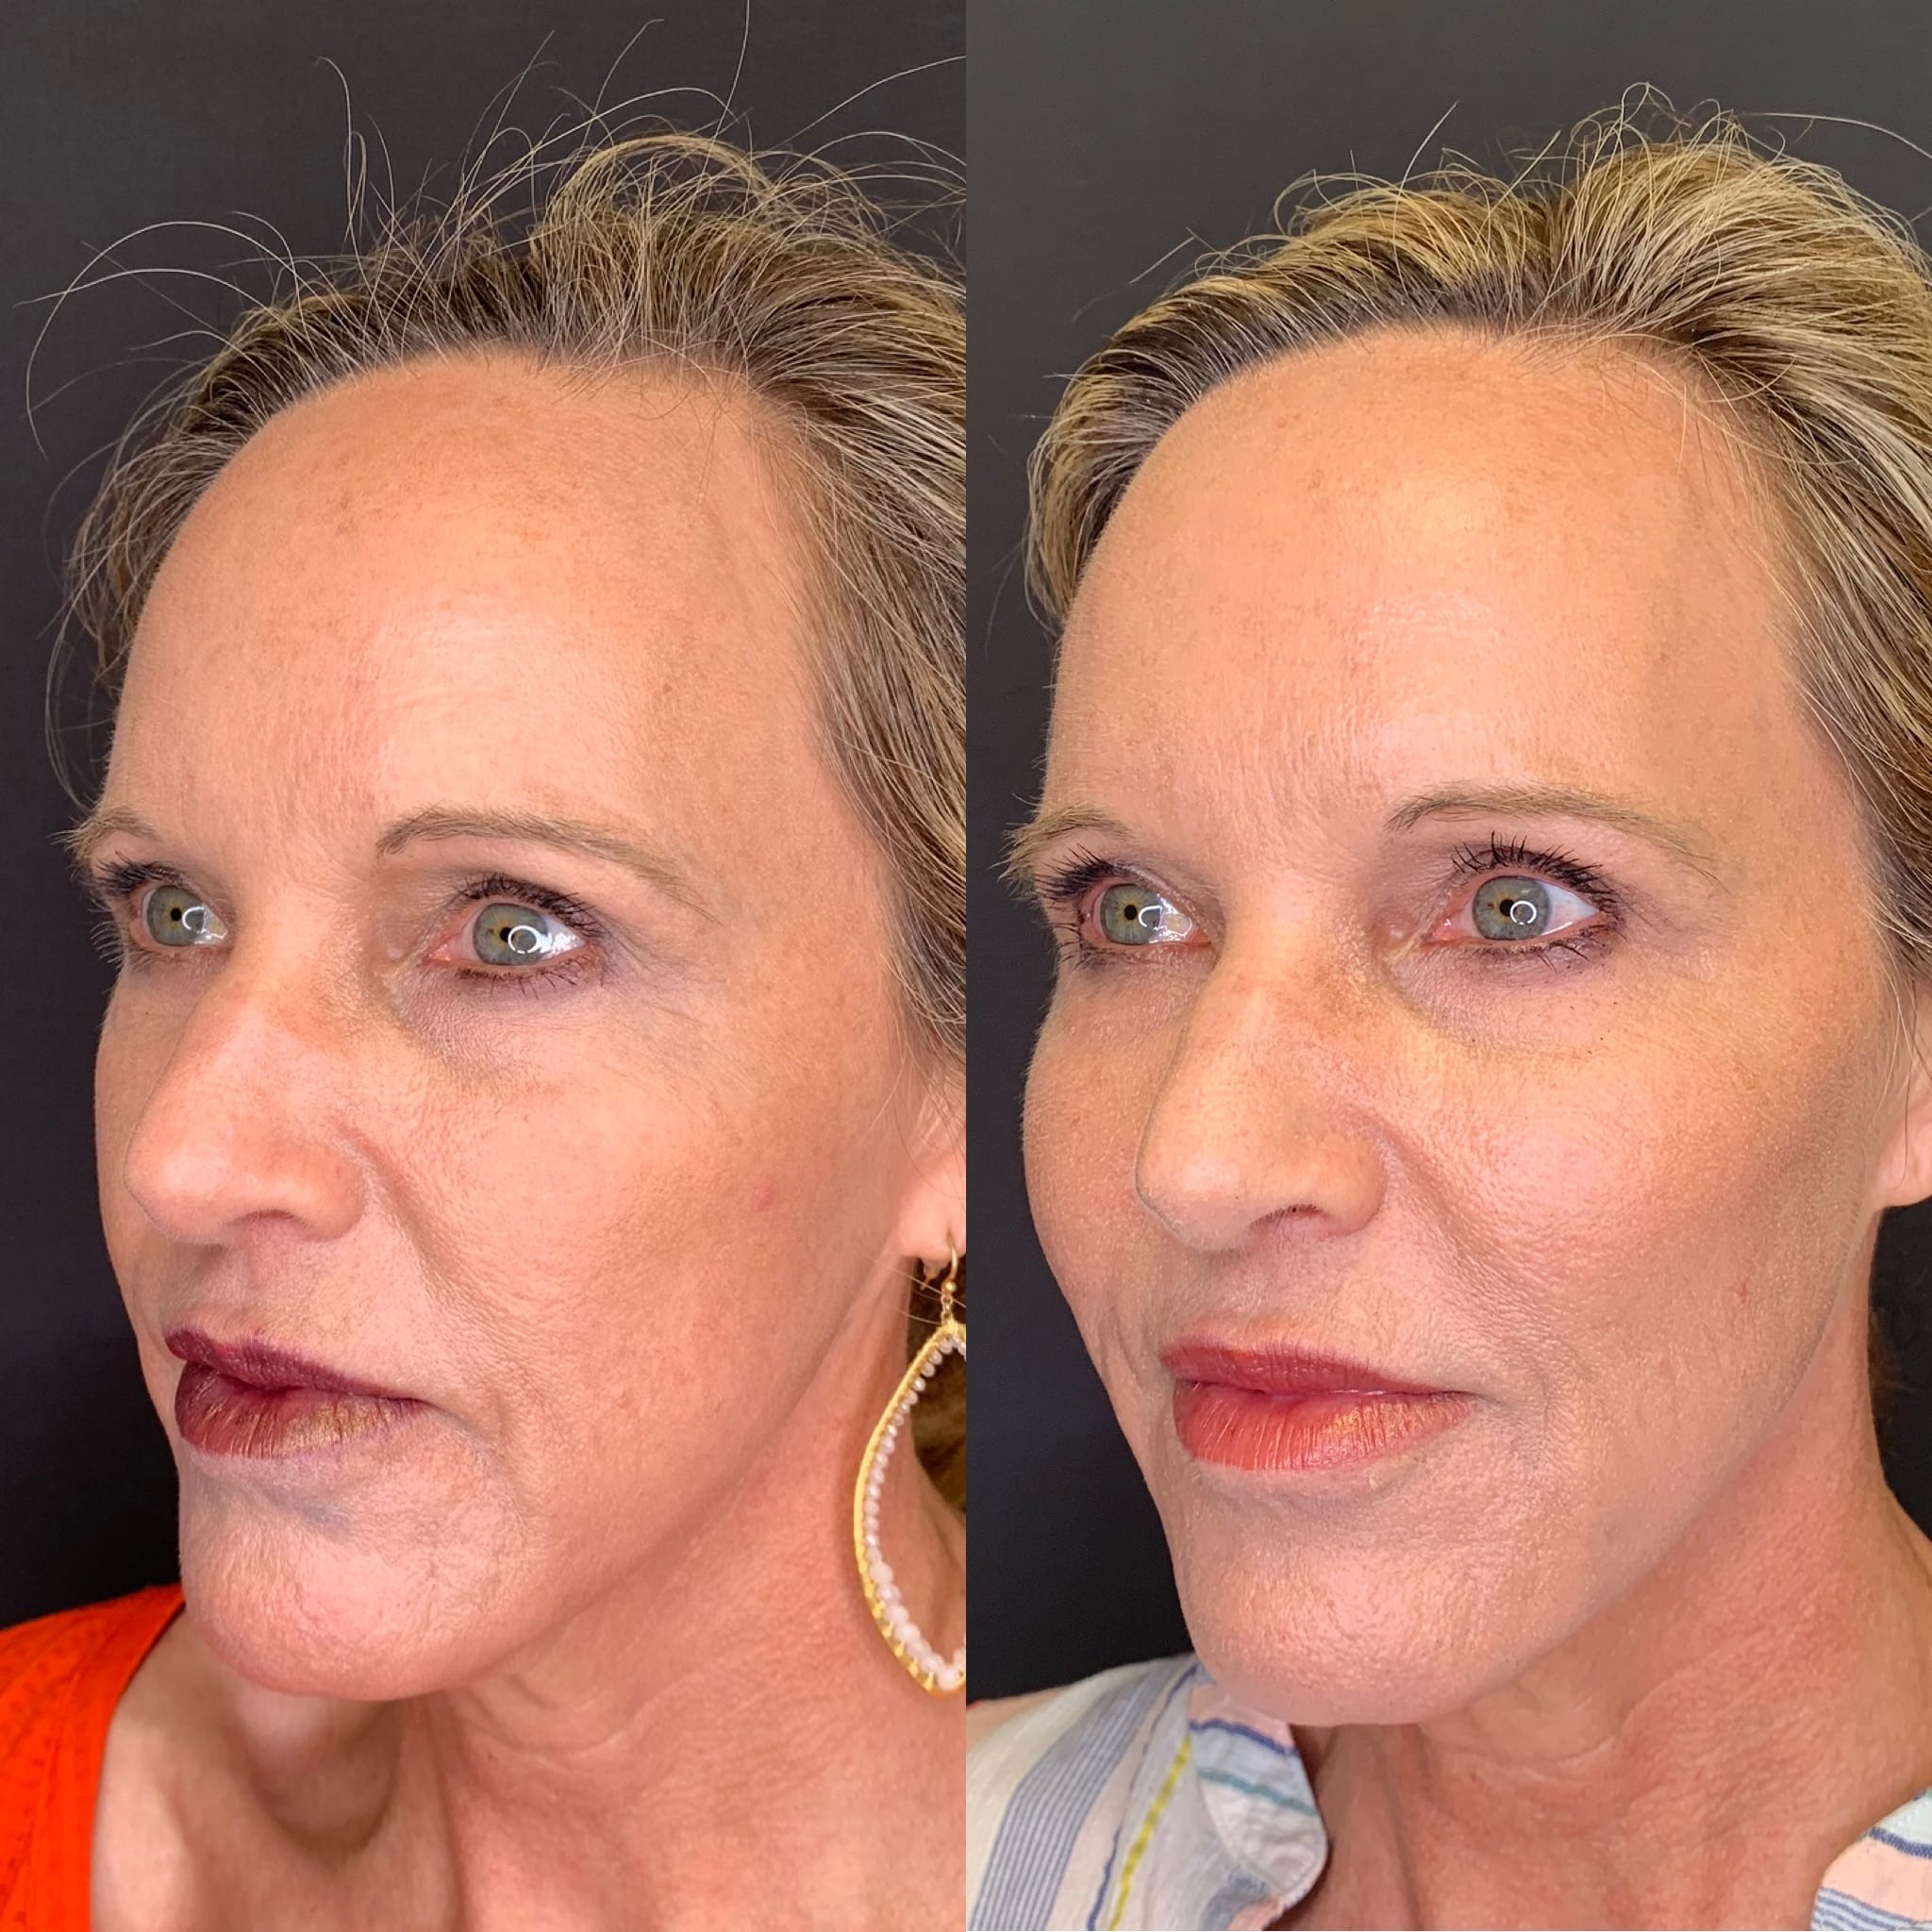 56 y/o Caucasian F 2 weeks after after injecting 3 syringes of voluma to her cheek bones for mid-face lift and facial contour.